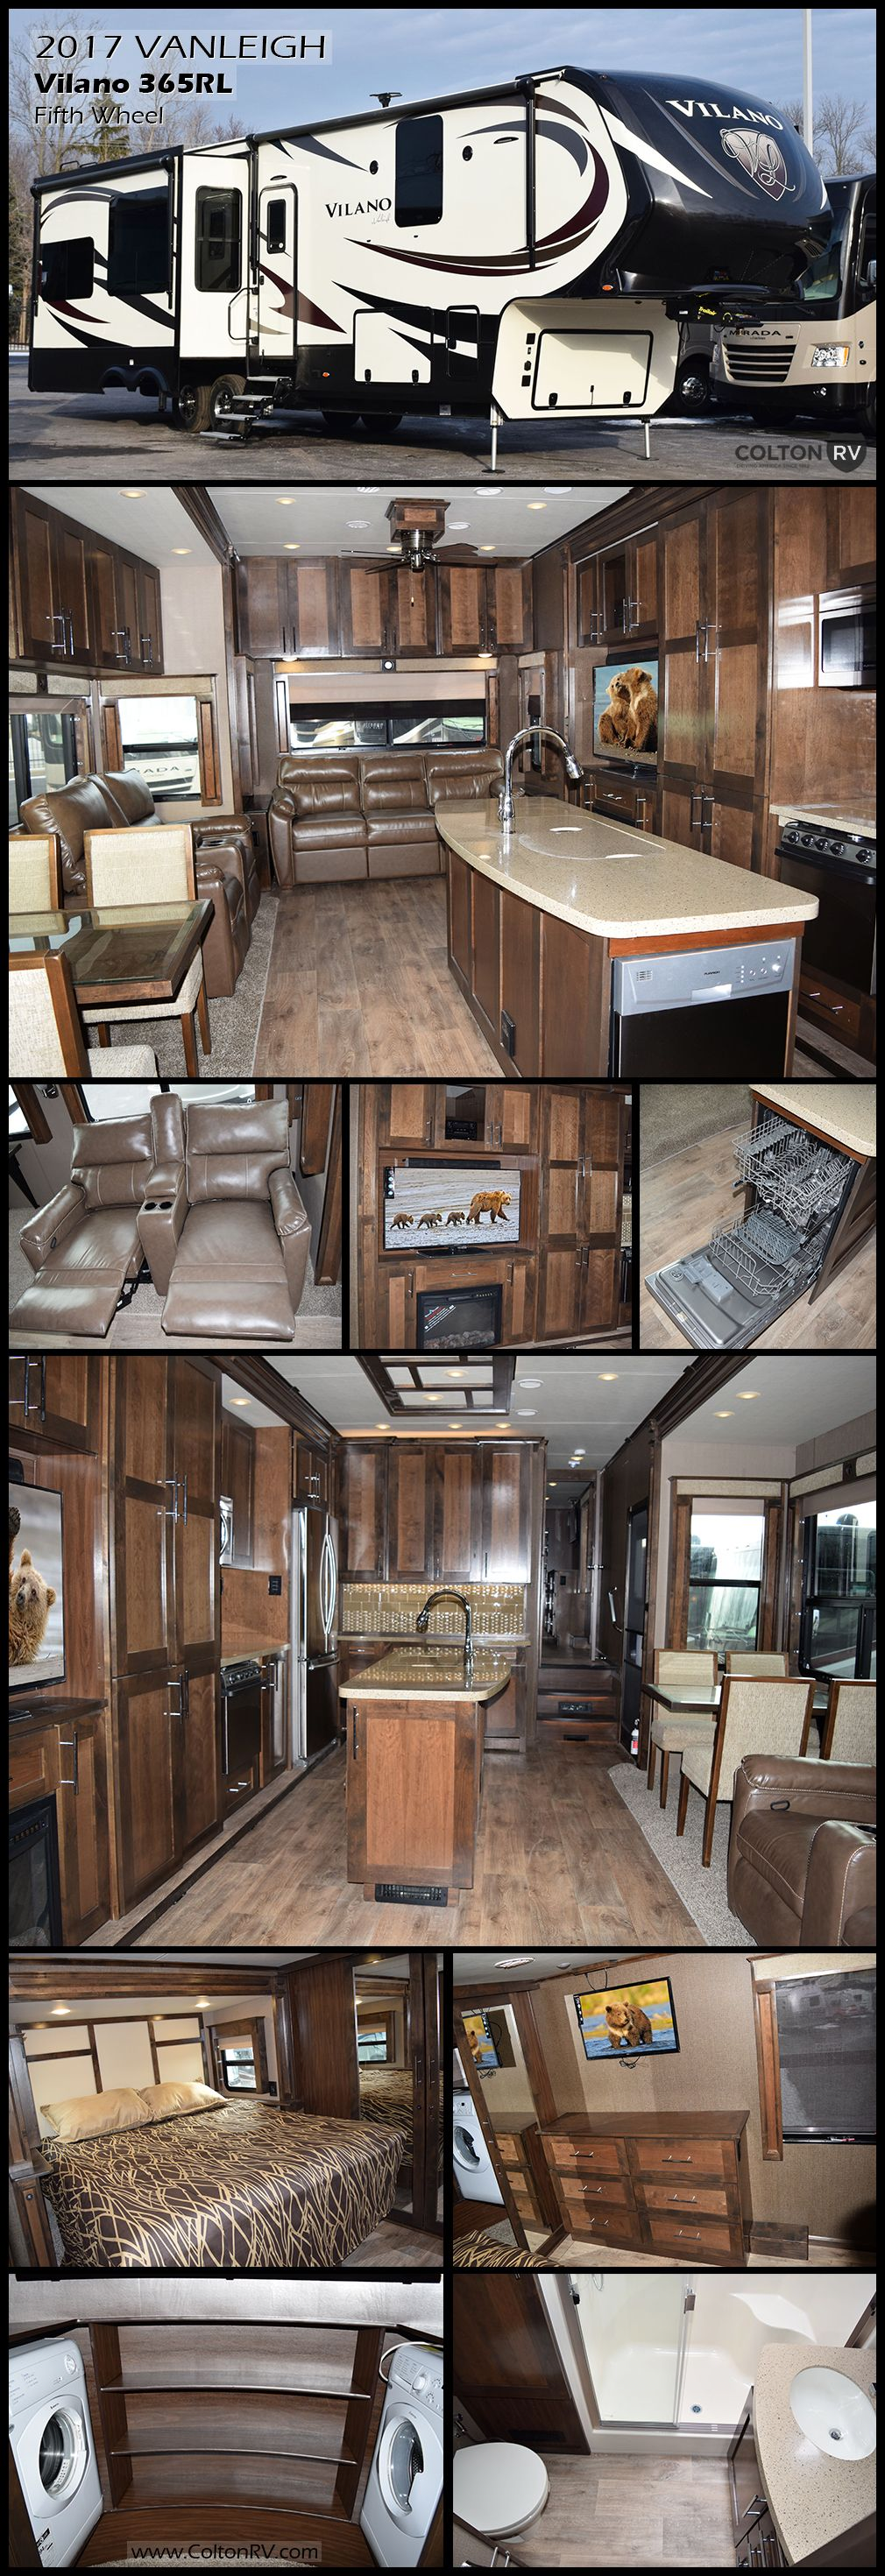 Inventory Colton Rv In Ny Buffalo Rochester And Syracuse Ny Rv Dealer Fifth Wheel Campers And Class A Motorhomes For Sale In Ny Rv Living Luxury Fifth Wheel Mobile Living